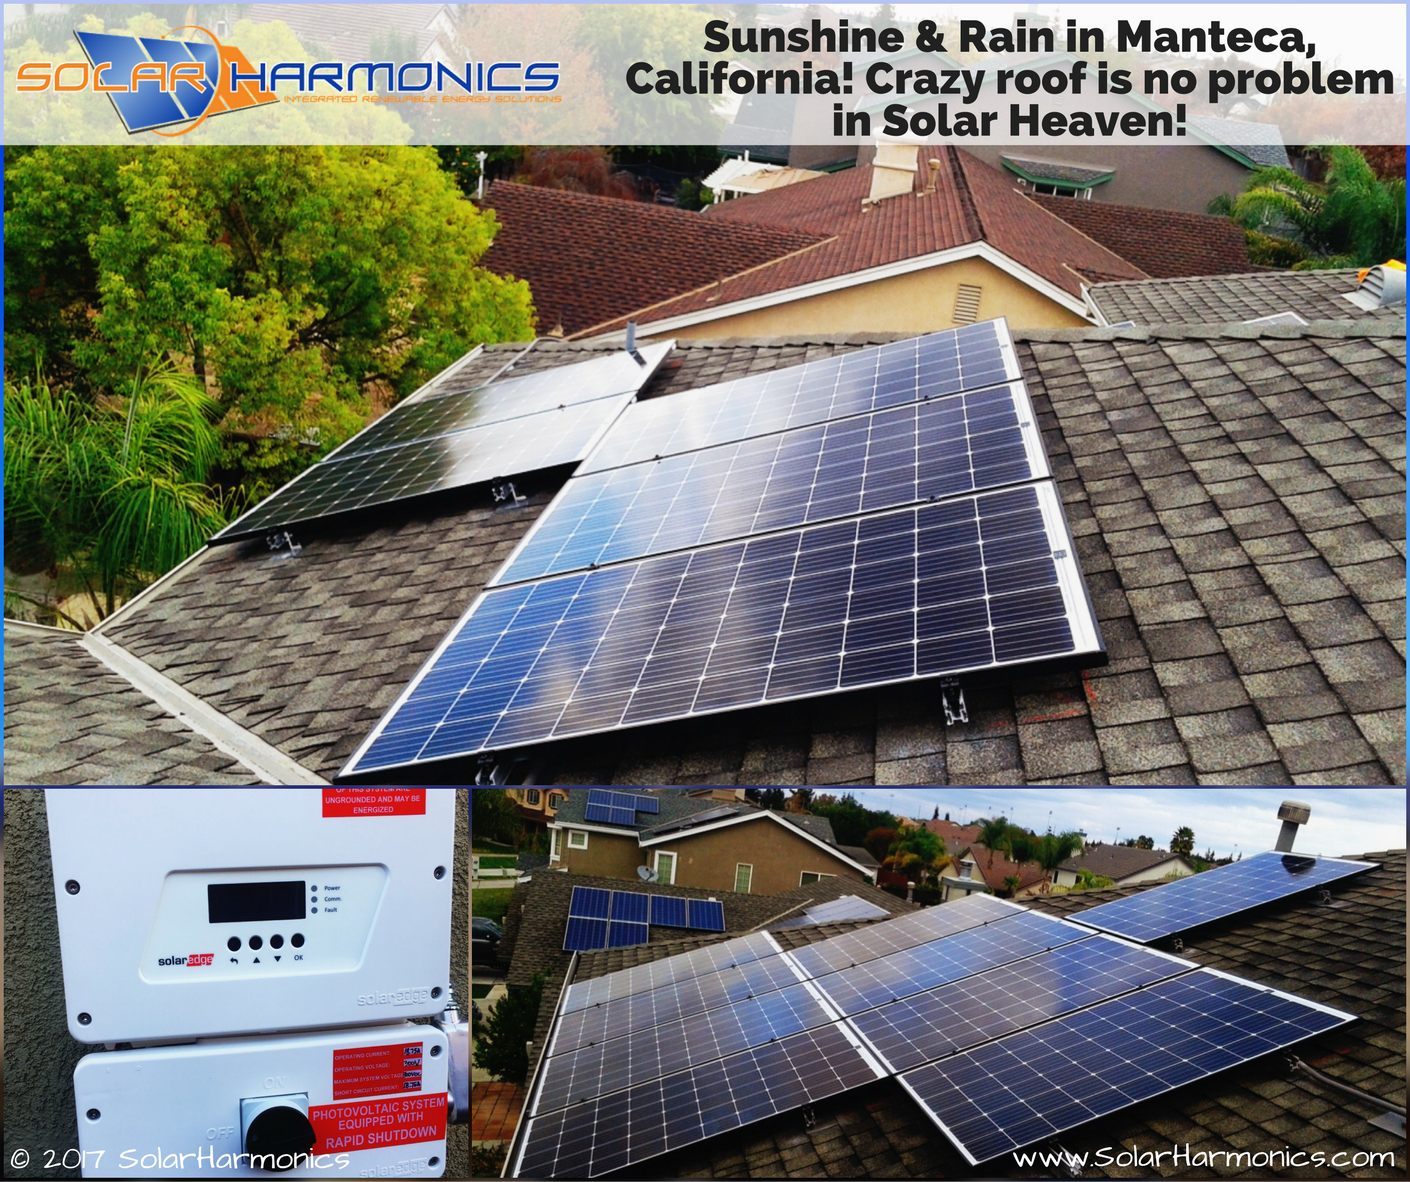 manteca-solar-panel-very-best-top-premier-awesome-solar-installation-installer-company-6